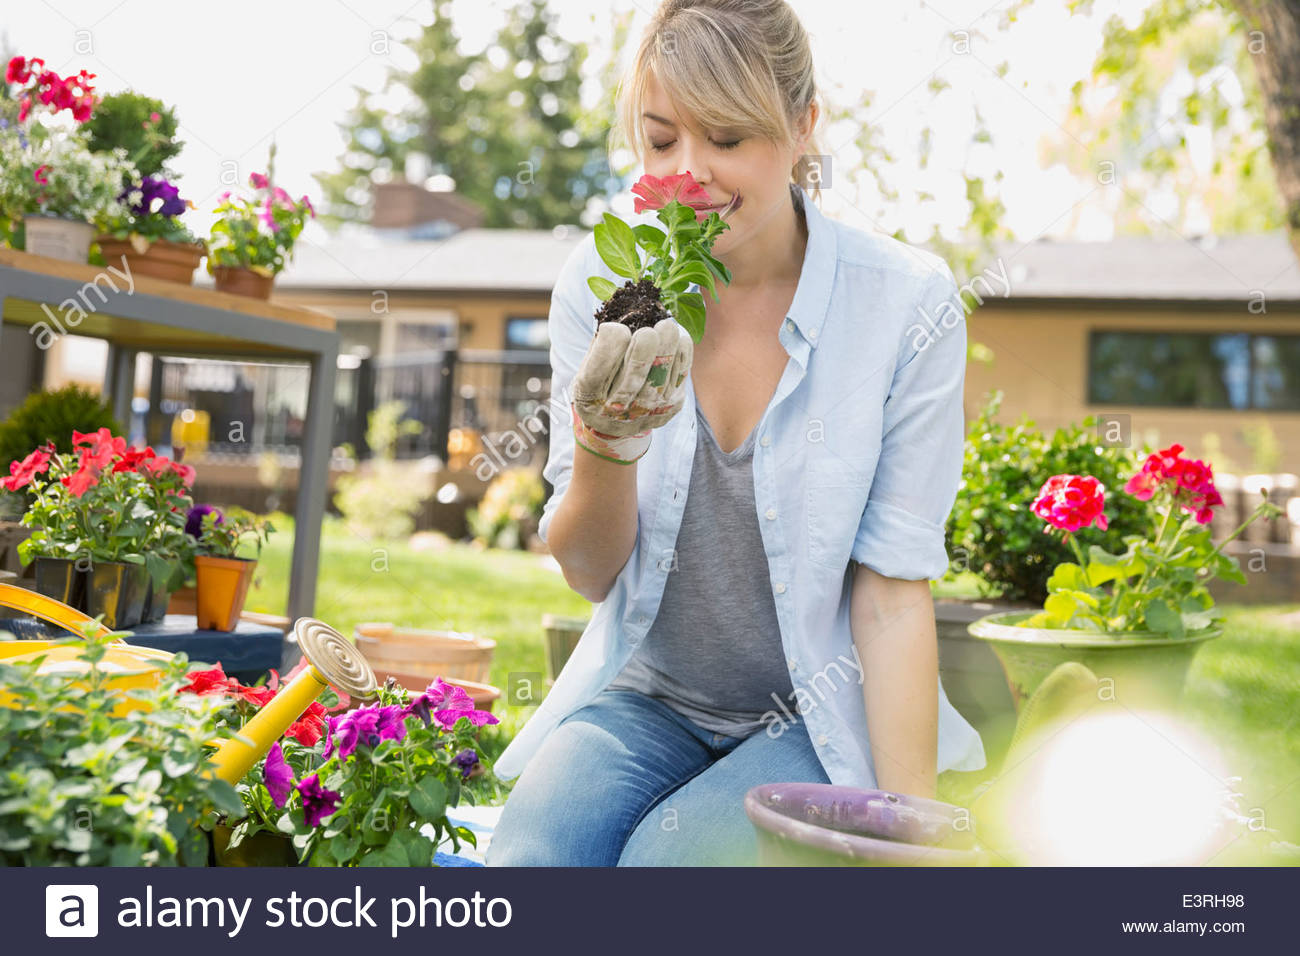 Woman smelling flower in garden - Stock Image